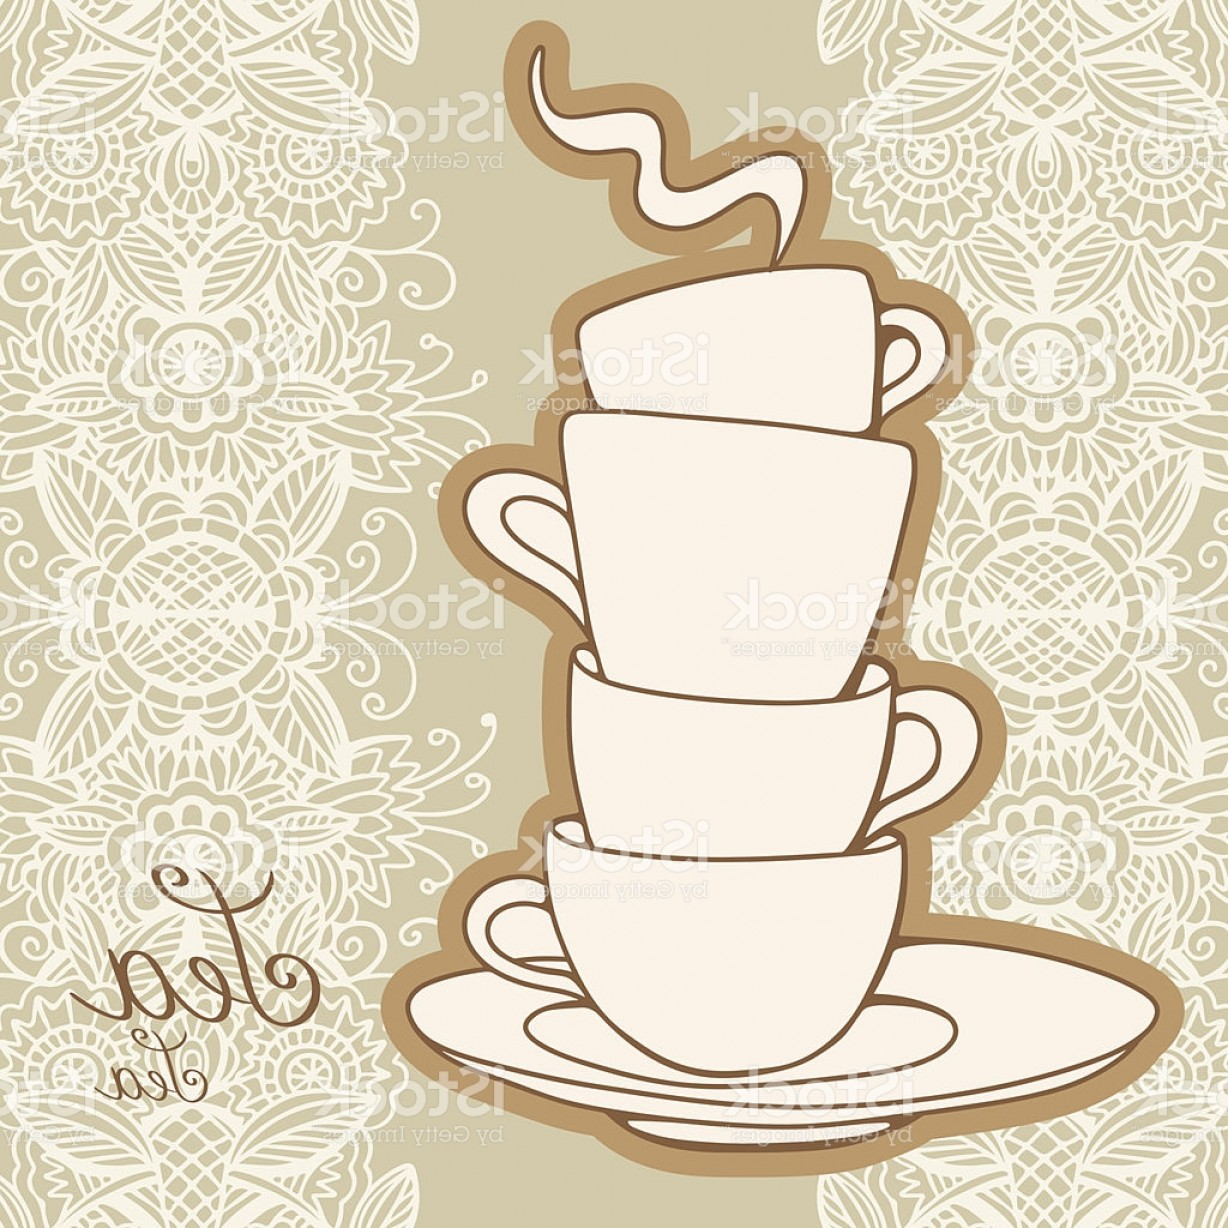 Vintage Tea Cup Vector: Illustration Of Stacked Teacups With Vintage Background Gm